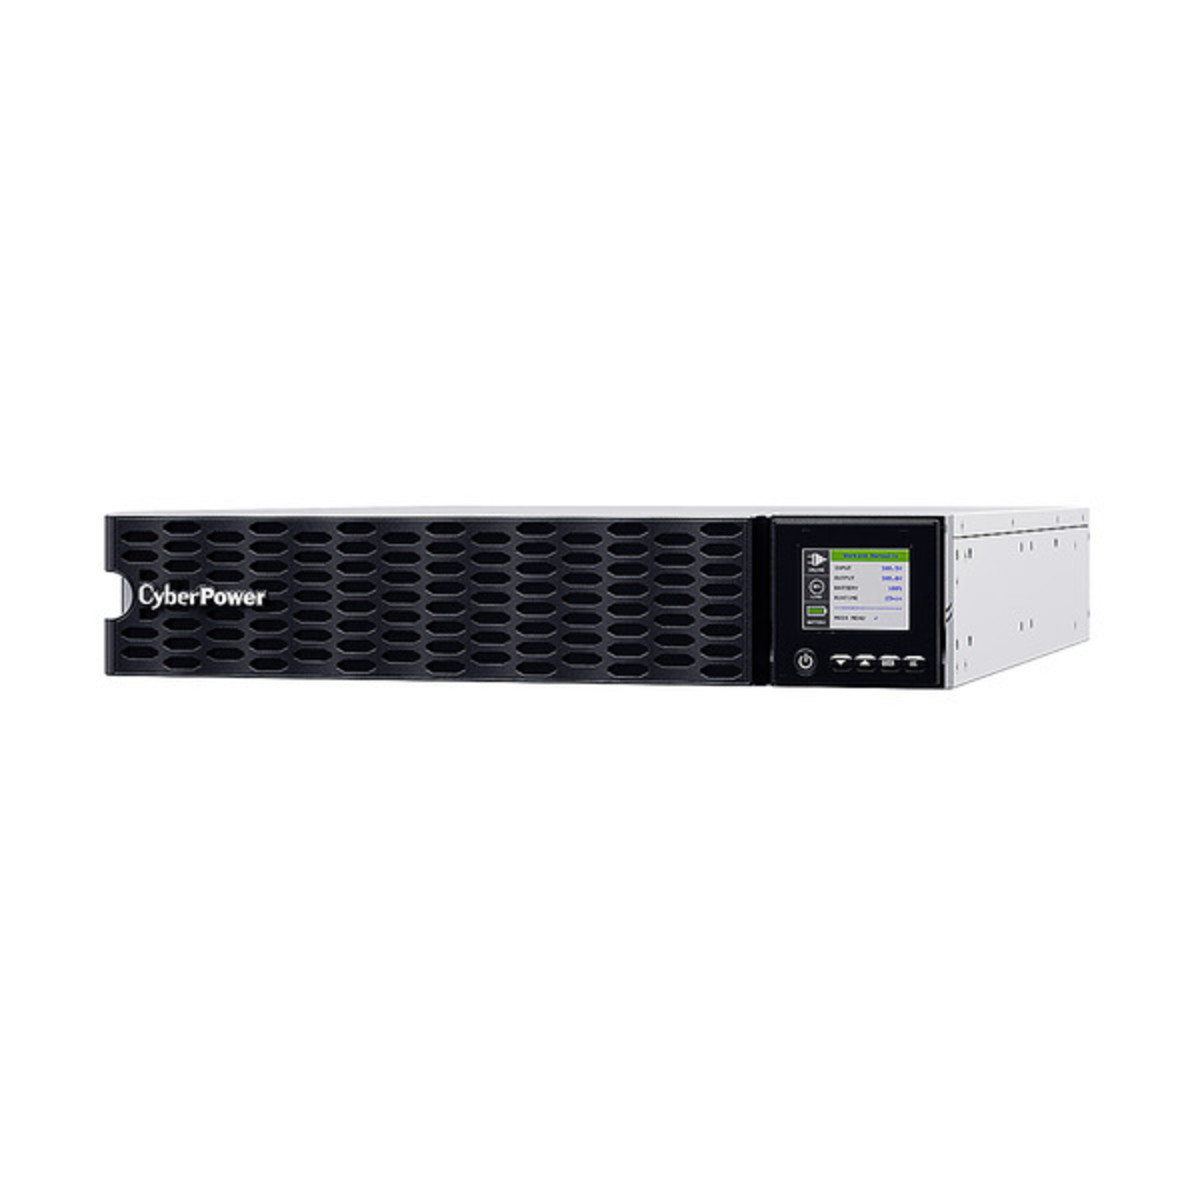 CyberPower High Density Series 6000VA 6000W 6 Outlet Online Double Conversion Rackmount UPS